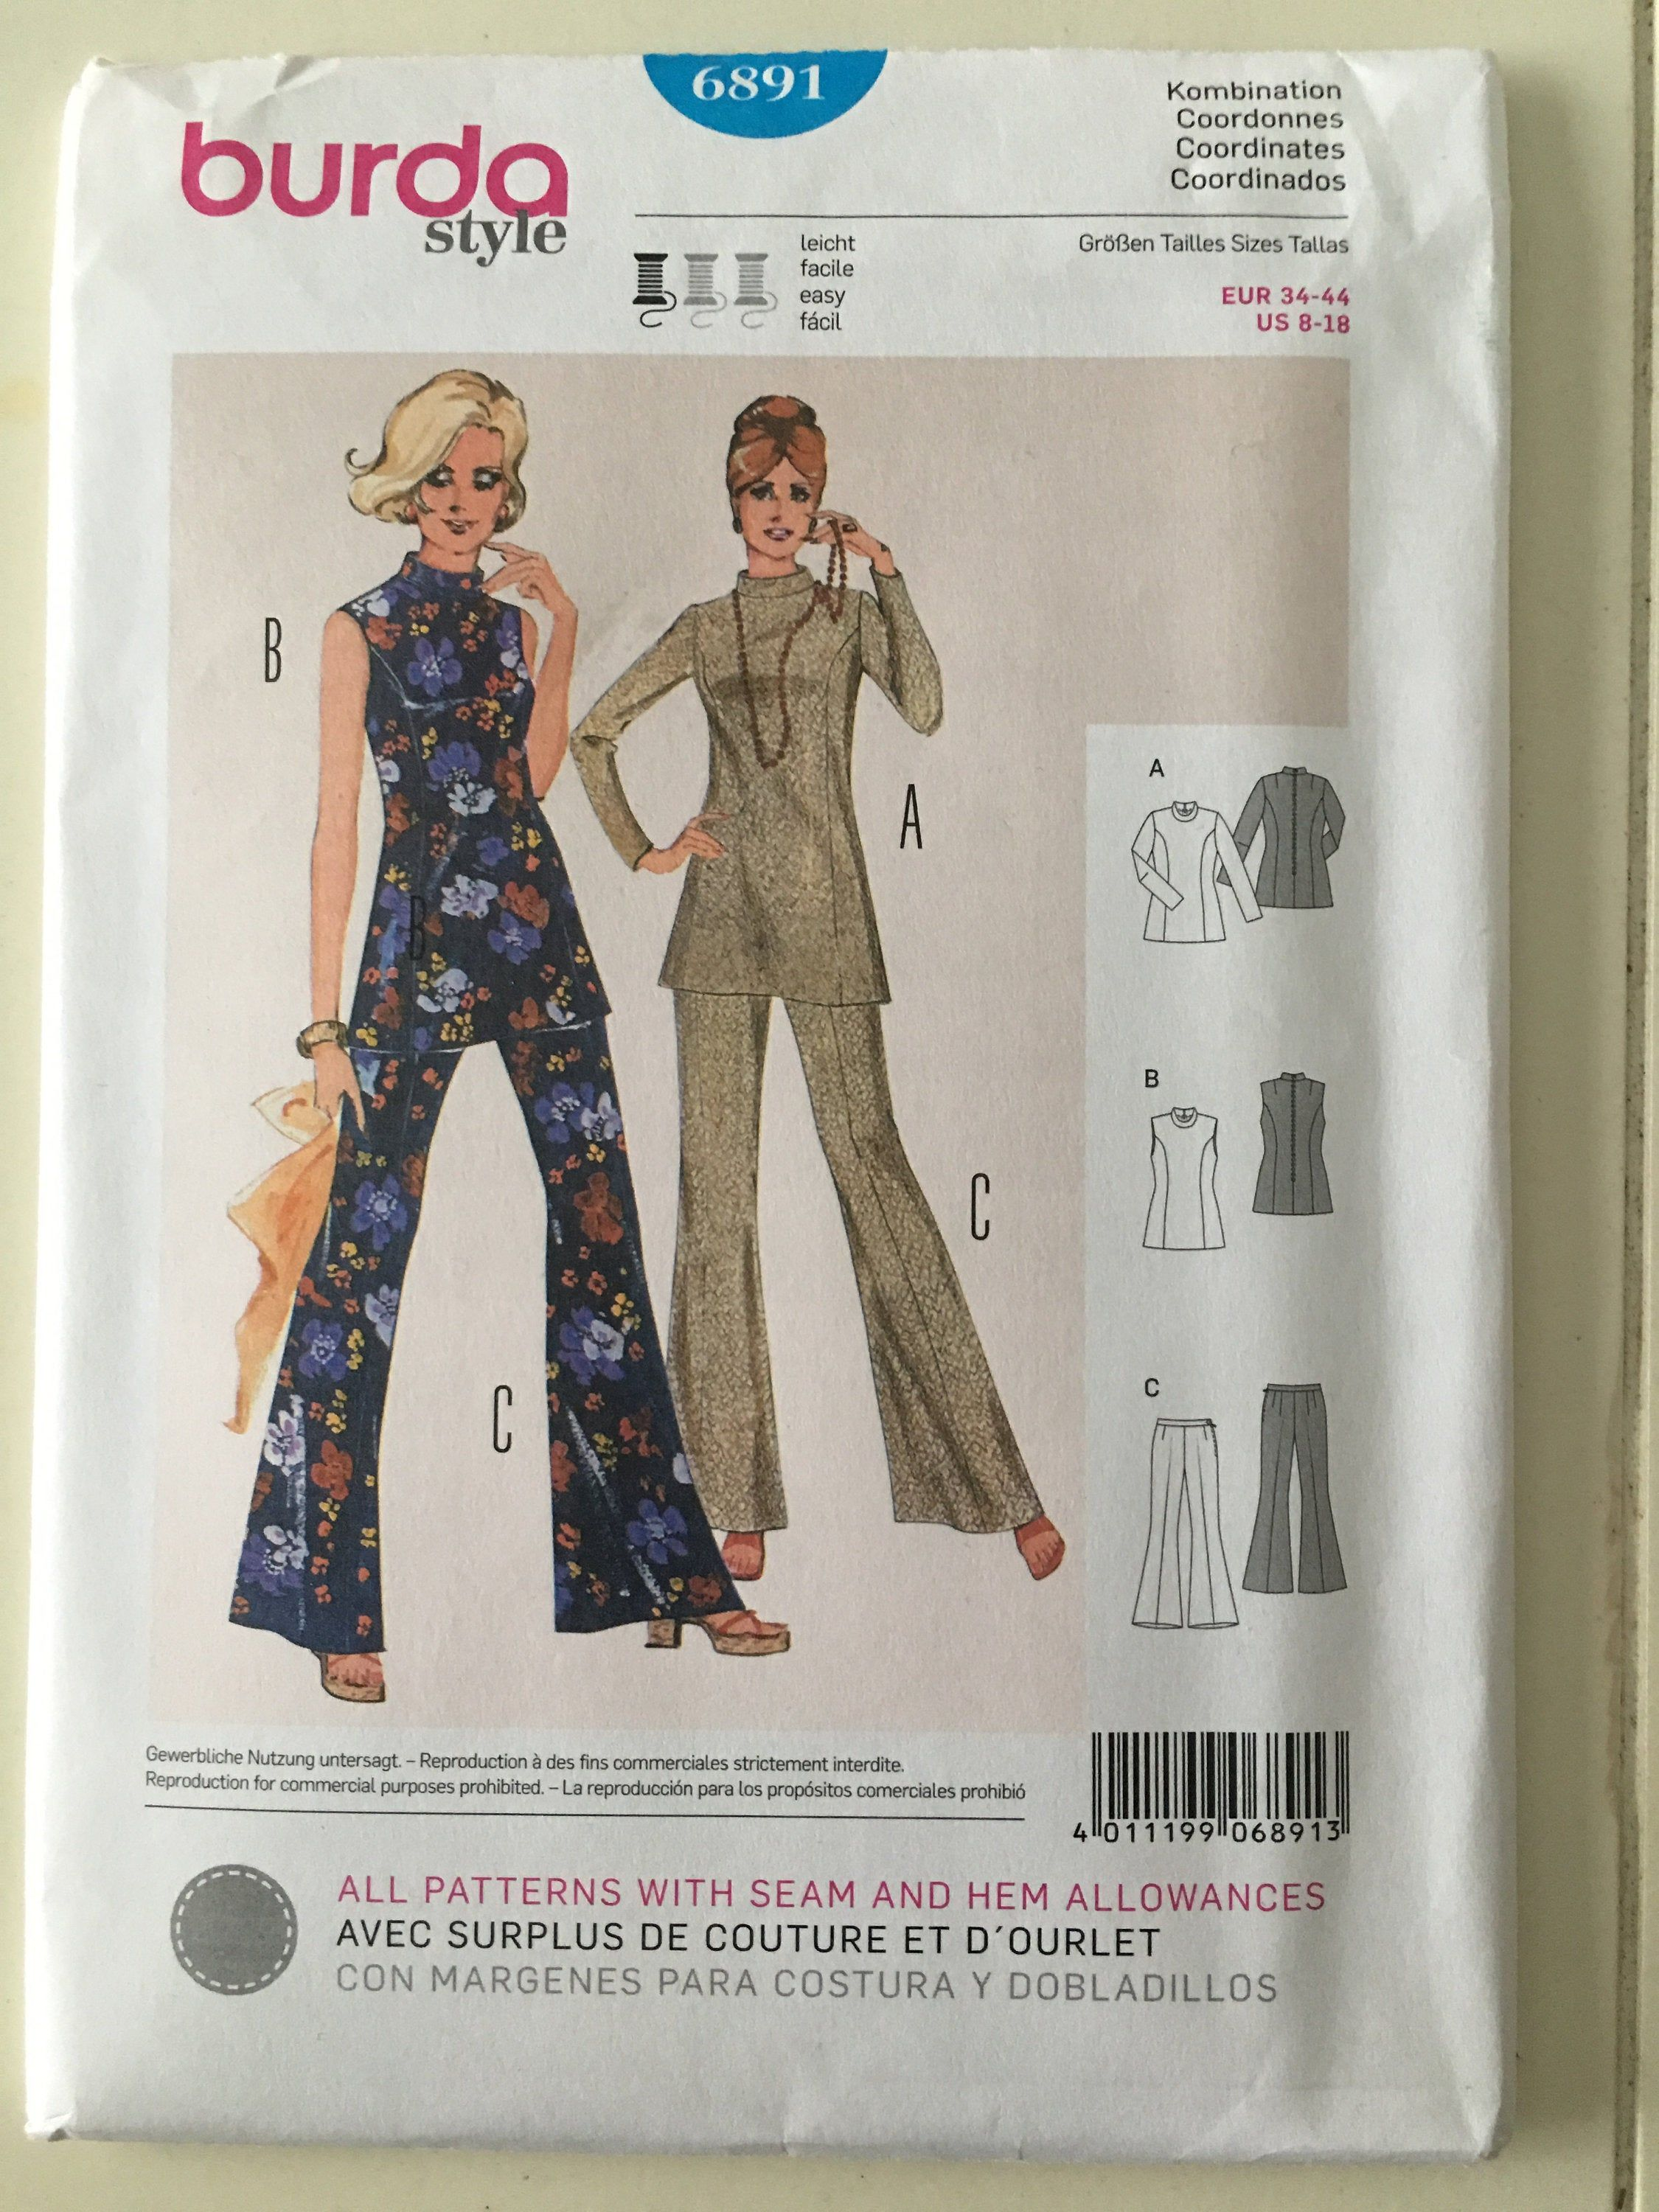 UC 70/'s Lot of 4 Sewing Patterns Simplicity Dress Pants Wide Leg Pants Jacket Vest Easy to Sew Tunic Size 8